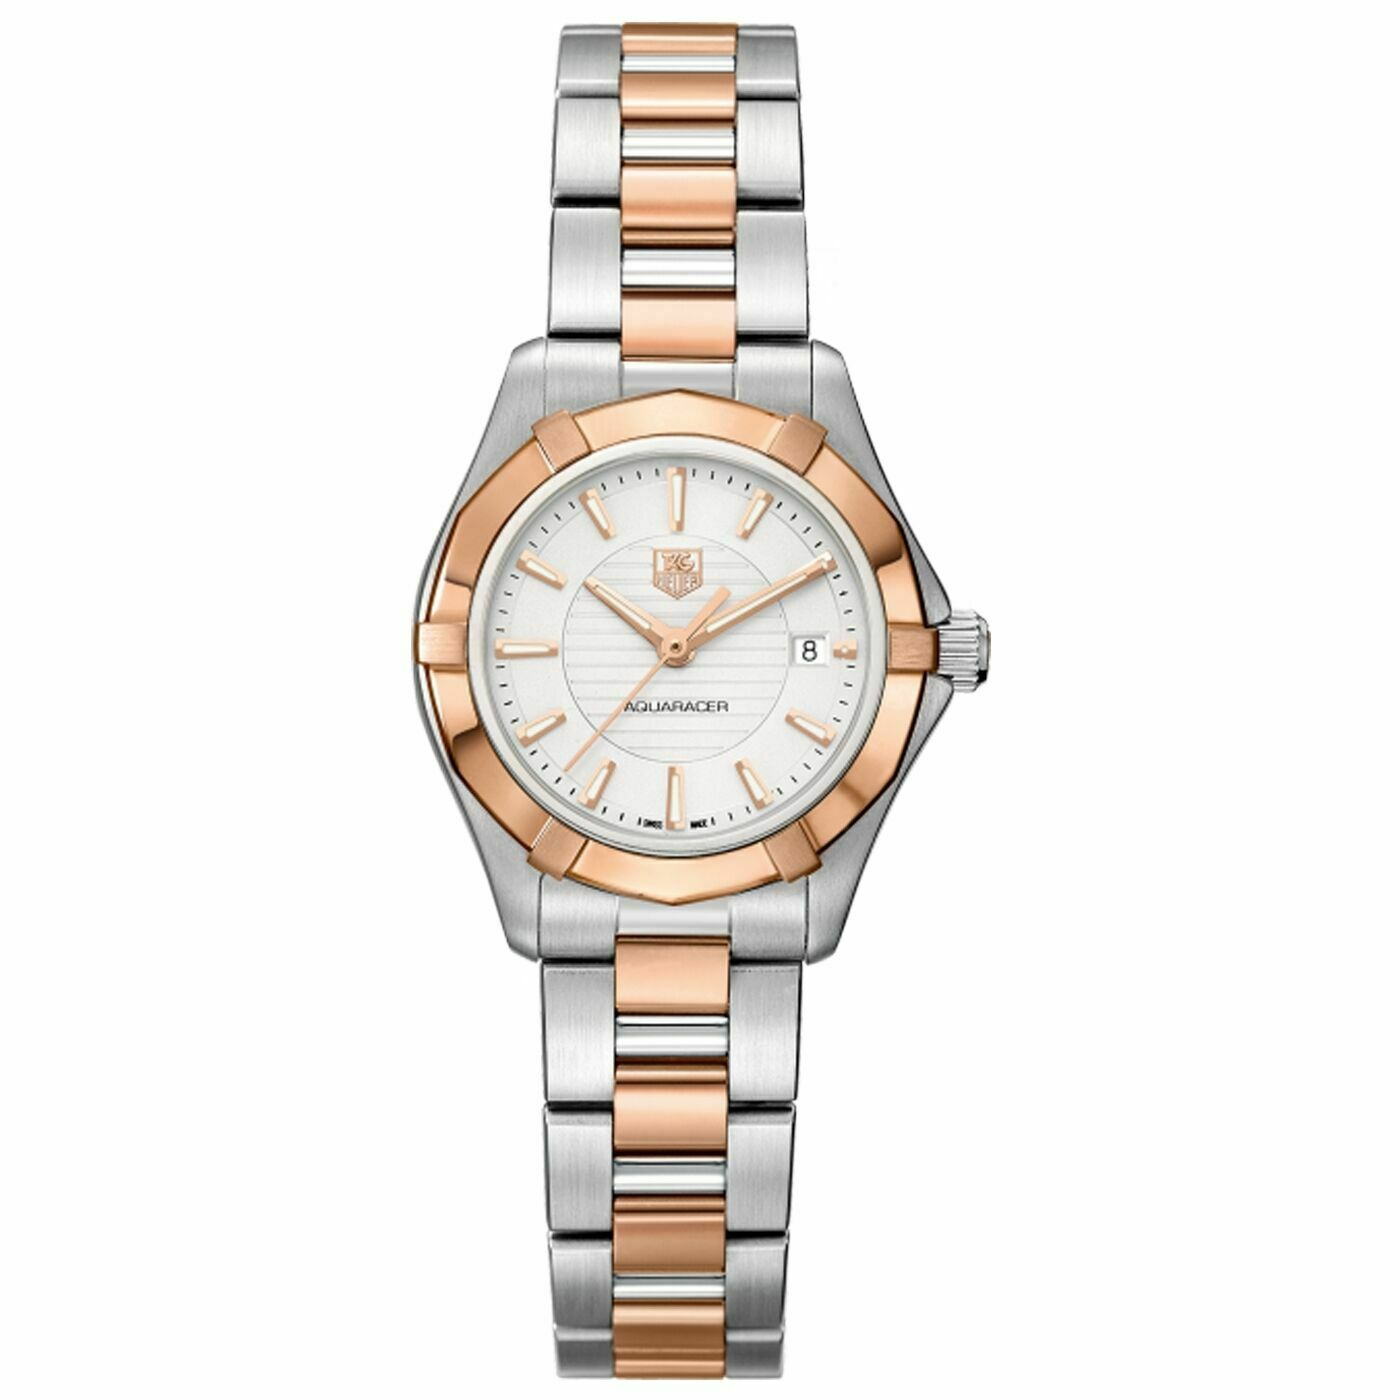 TAG HEUER AQUARACER WAP1450.BD0837 DIAMOND PEARL 18K ROSE GOLD LADIES WATCH